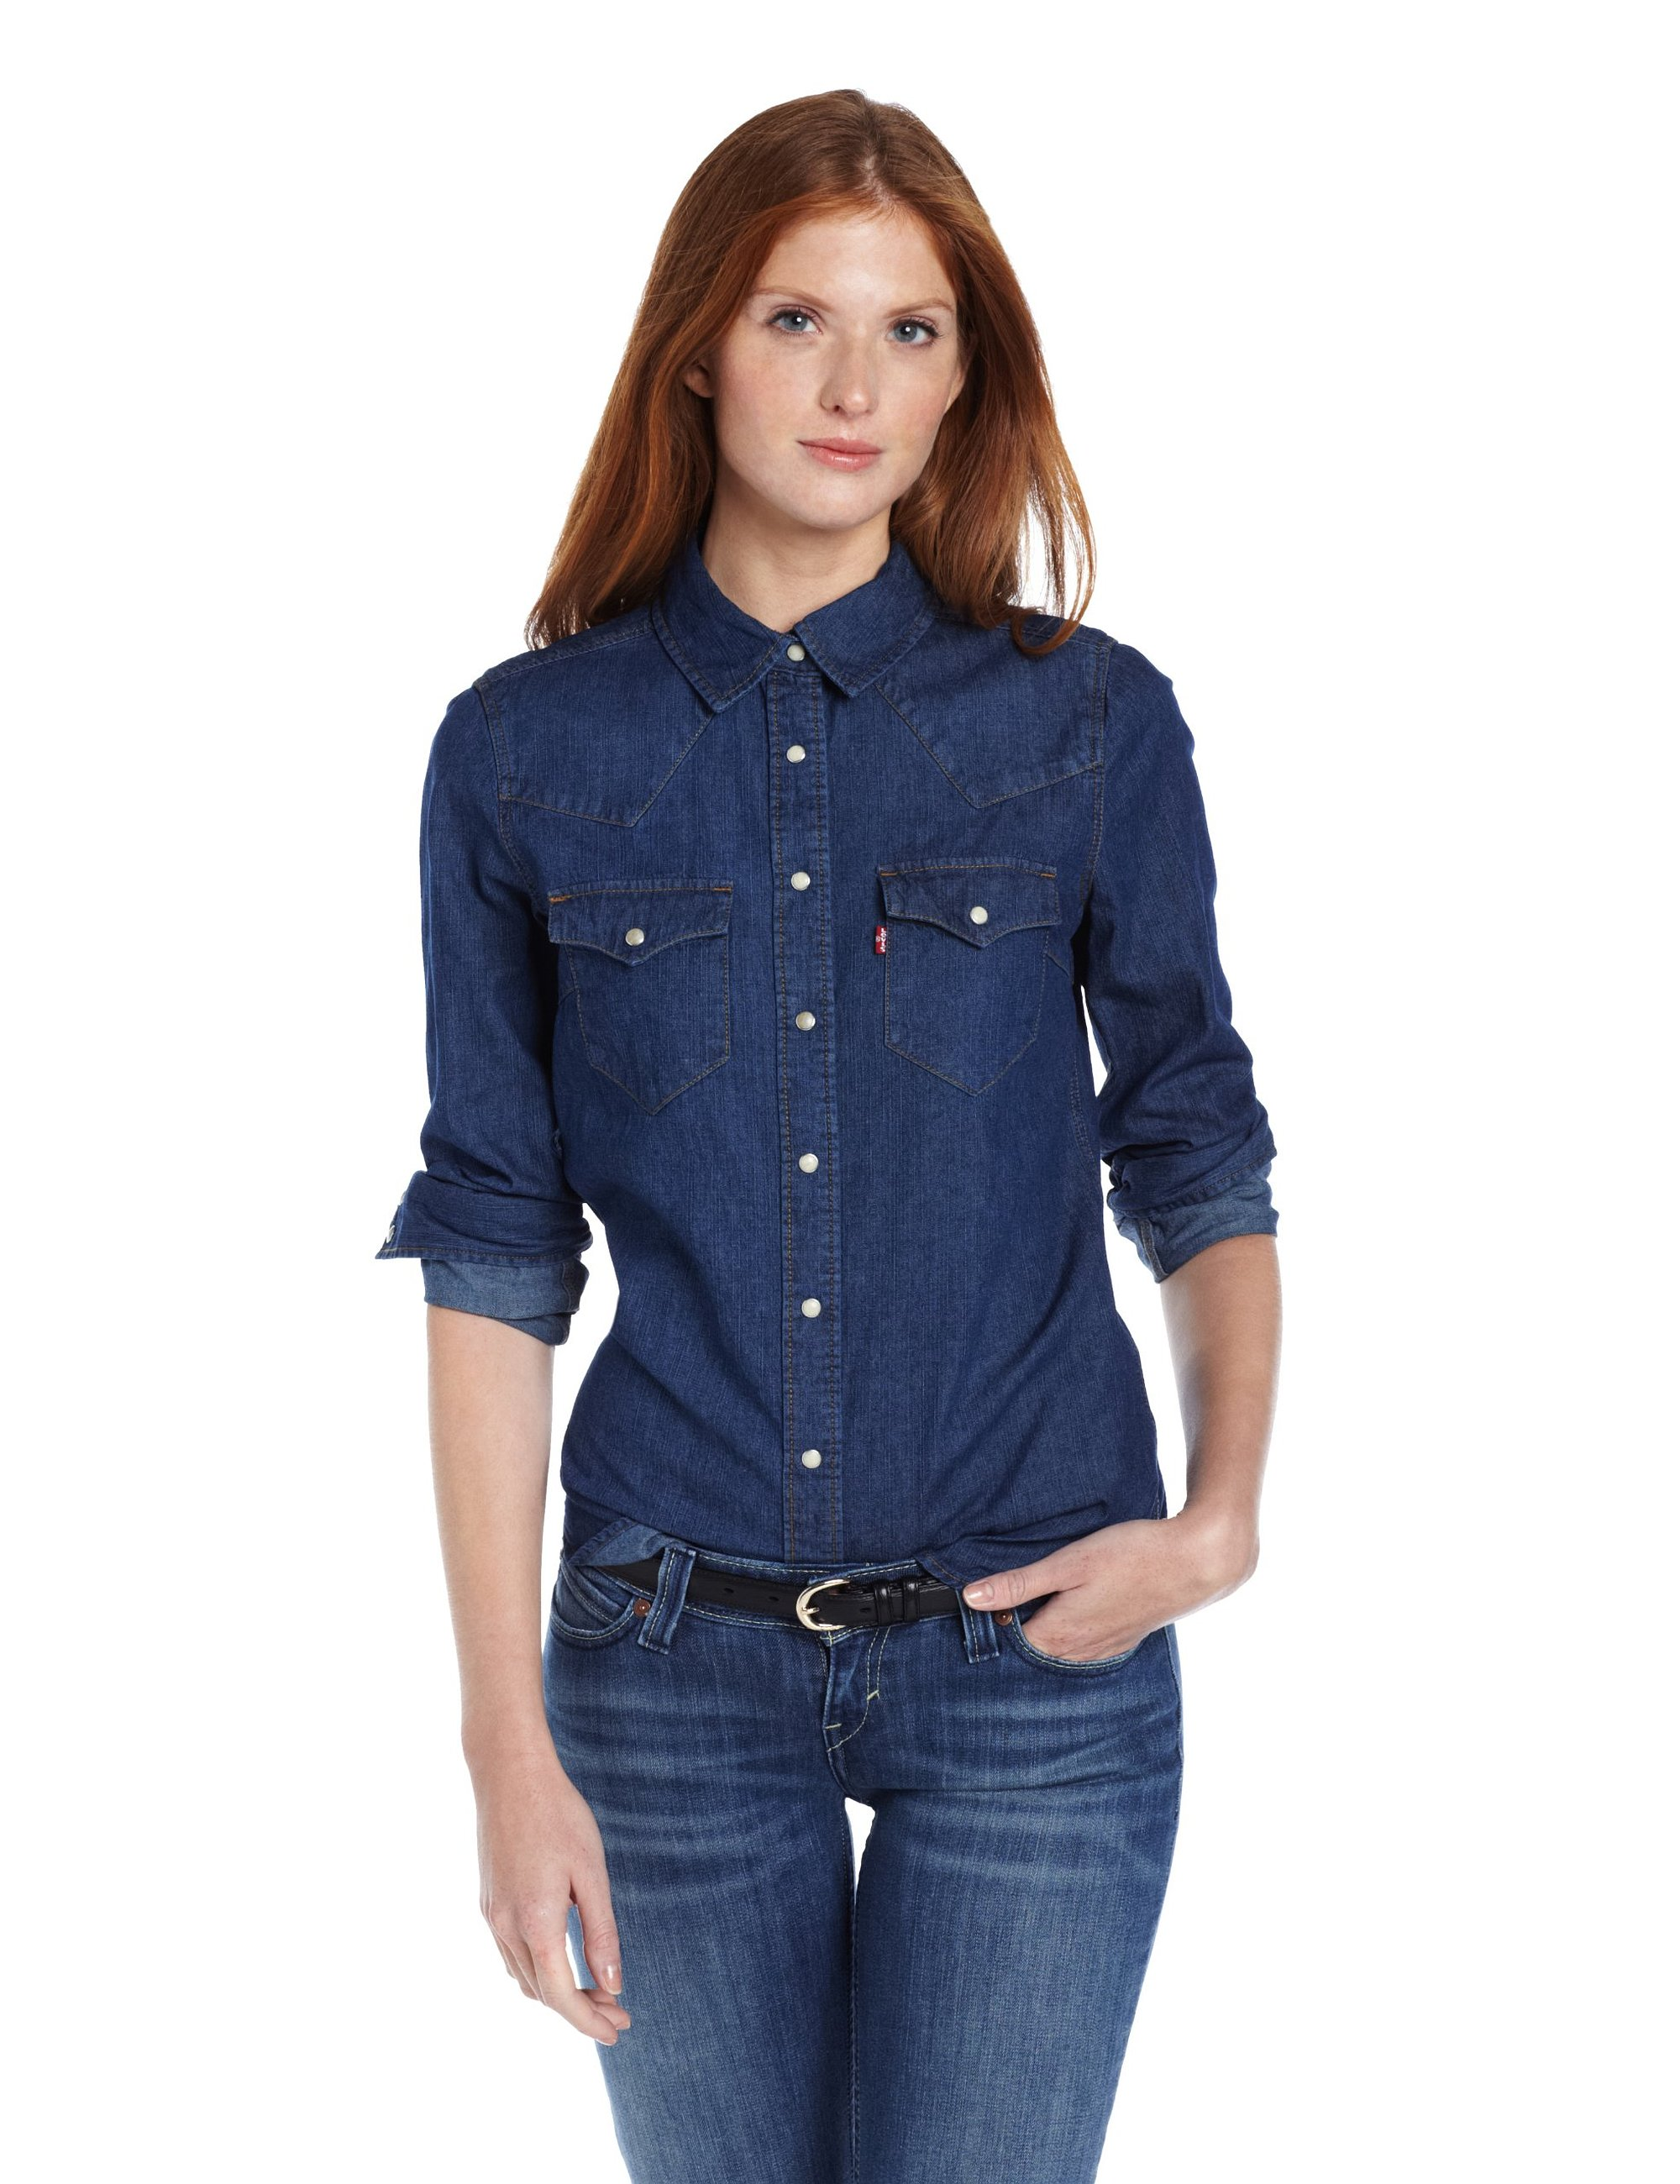 Levis women 39 s tailored western denim shirt for Blue denim shirt for womens